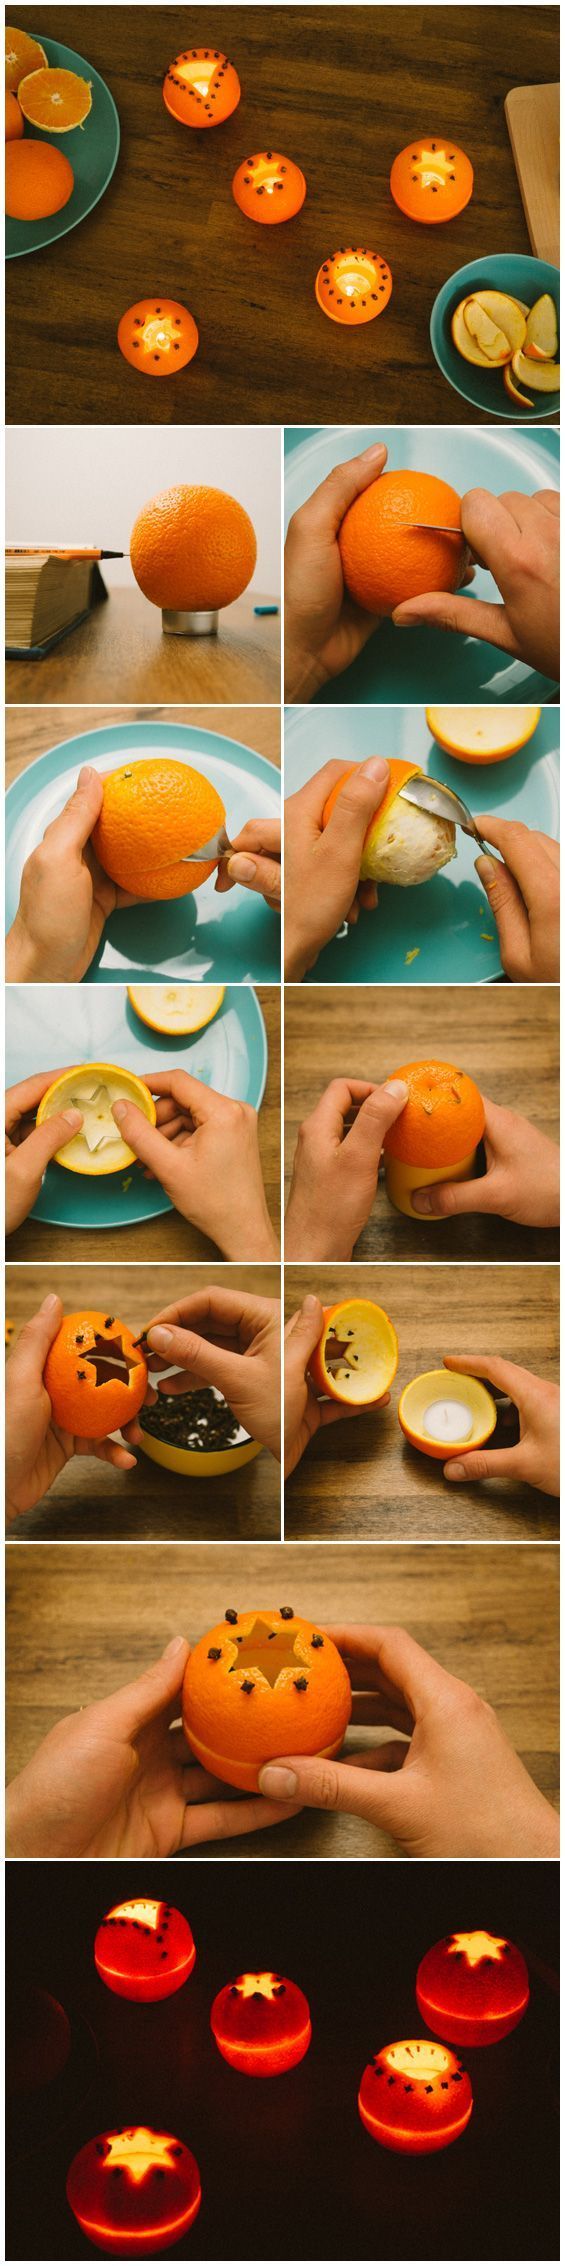 DIY candle holders made from oranges.